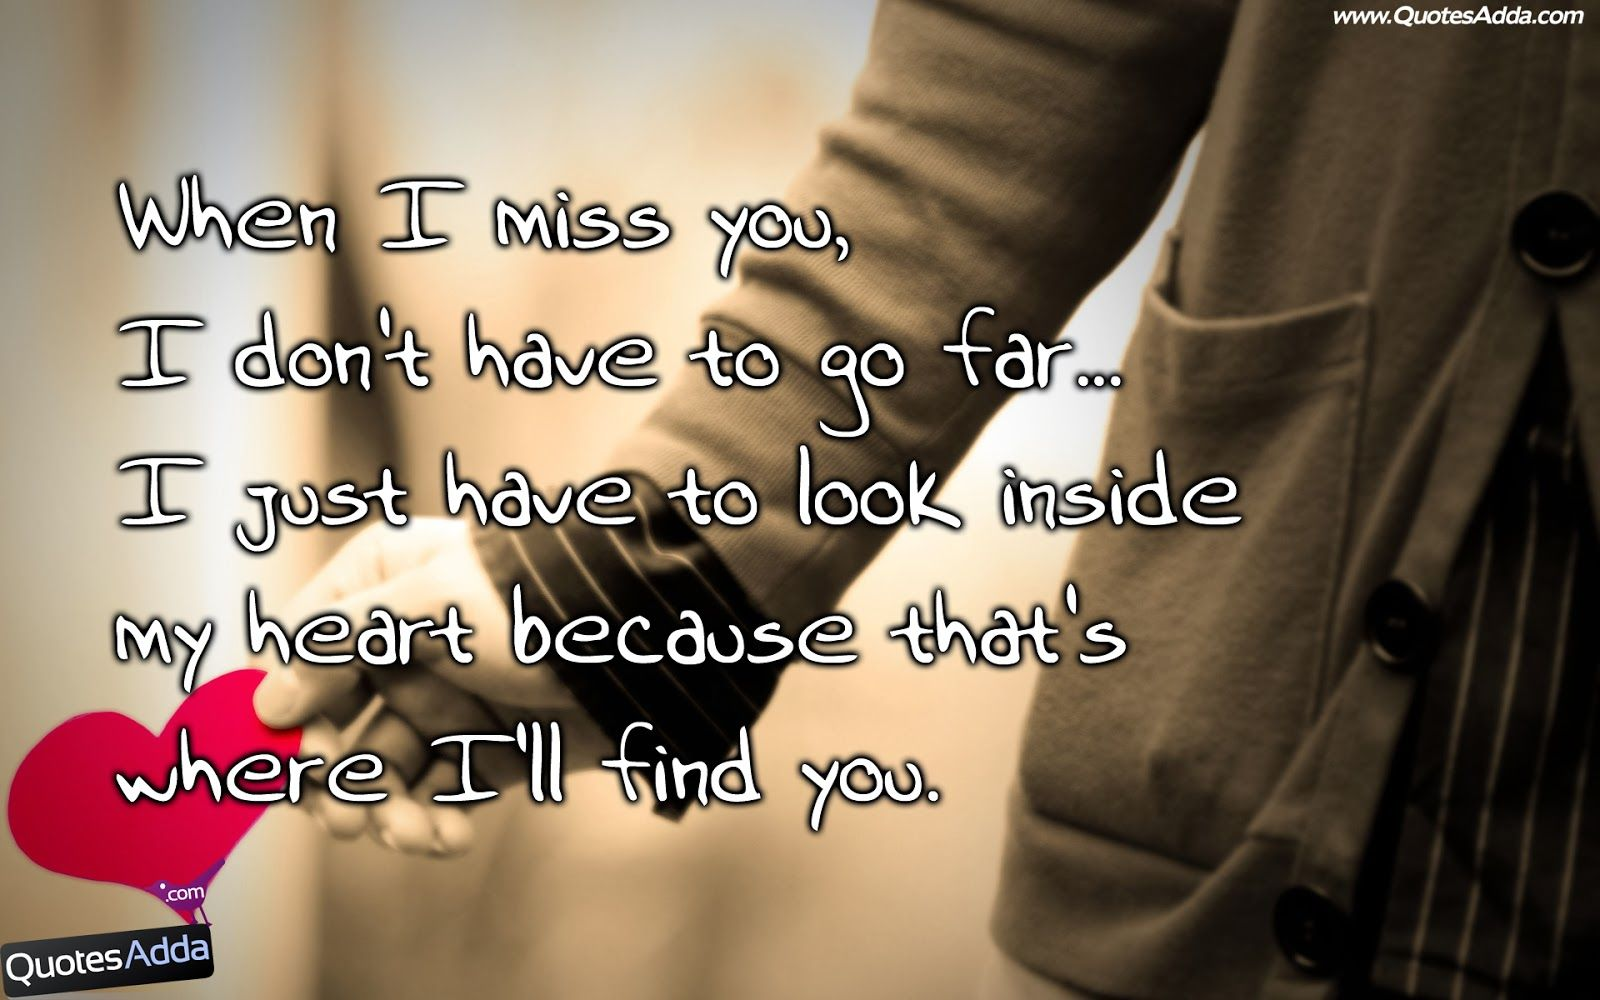 Love U Quotes For Her In Hindi Quotes Missing You Quotes For Him I Miss You Quotes For Him Love Quotes For Her